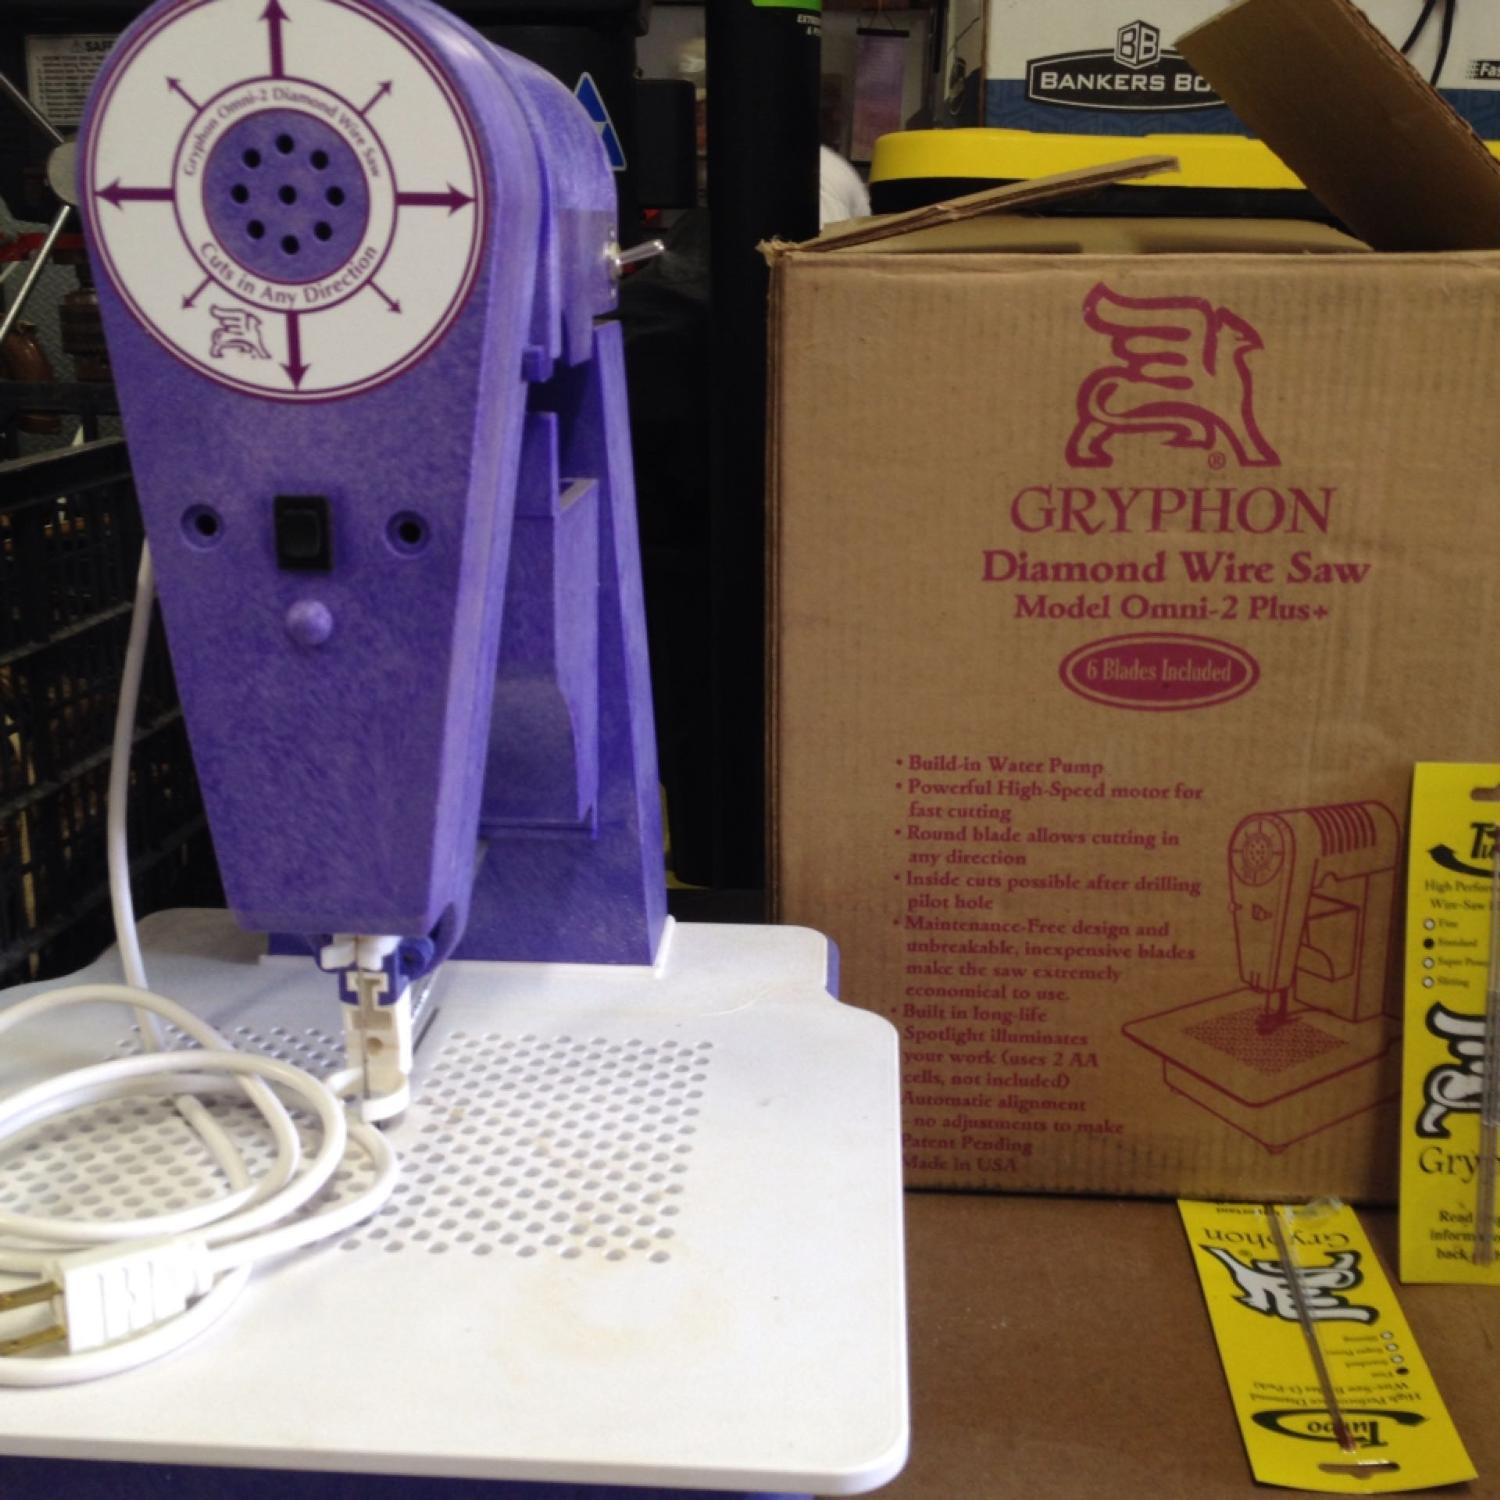 Find more Gryphon Diamond Wire Saw Model Omni-2 Plus Build In Water ...